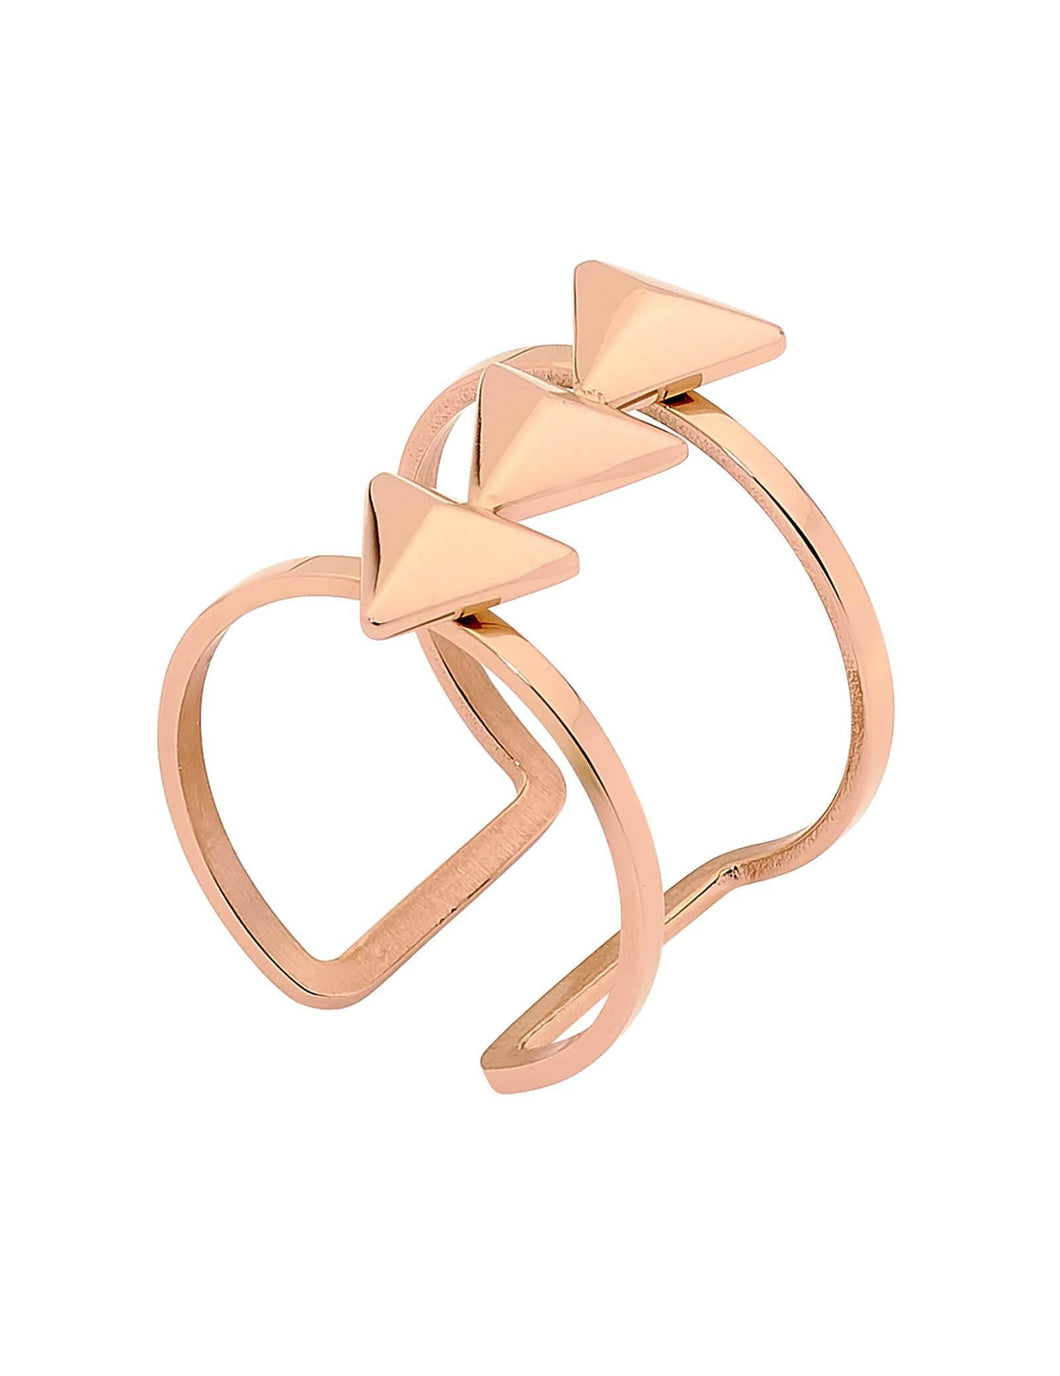 Shooting Stars Cuff Ring Rose Gold by Pastiche available at My Harley and Rose